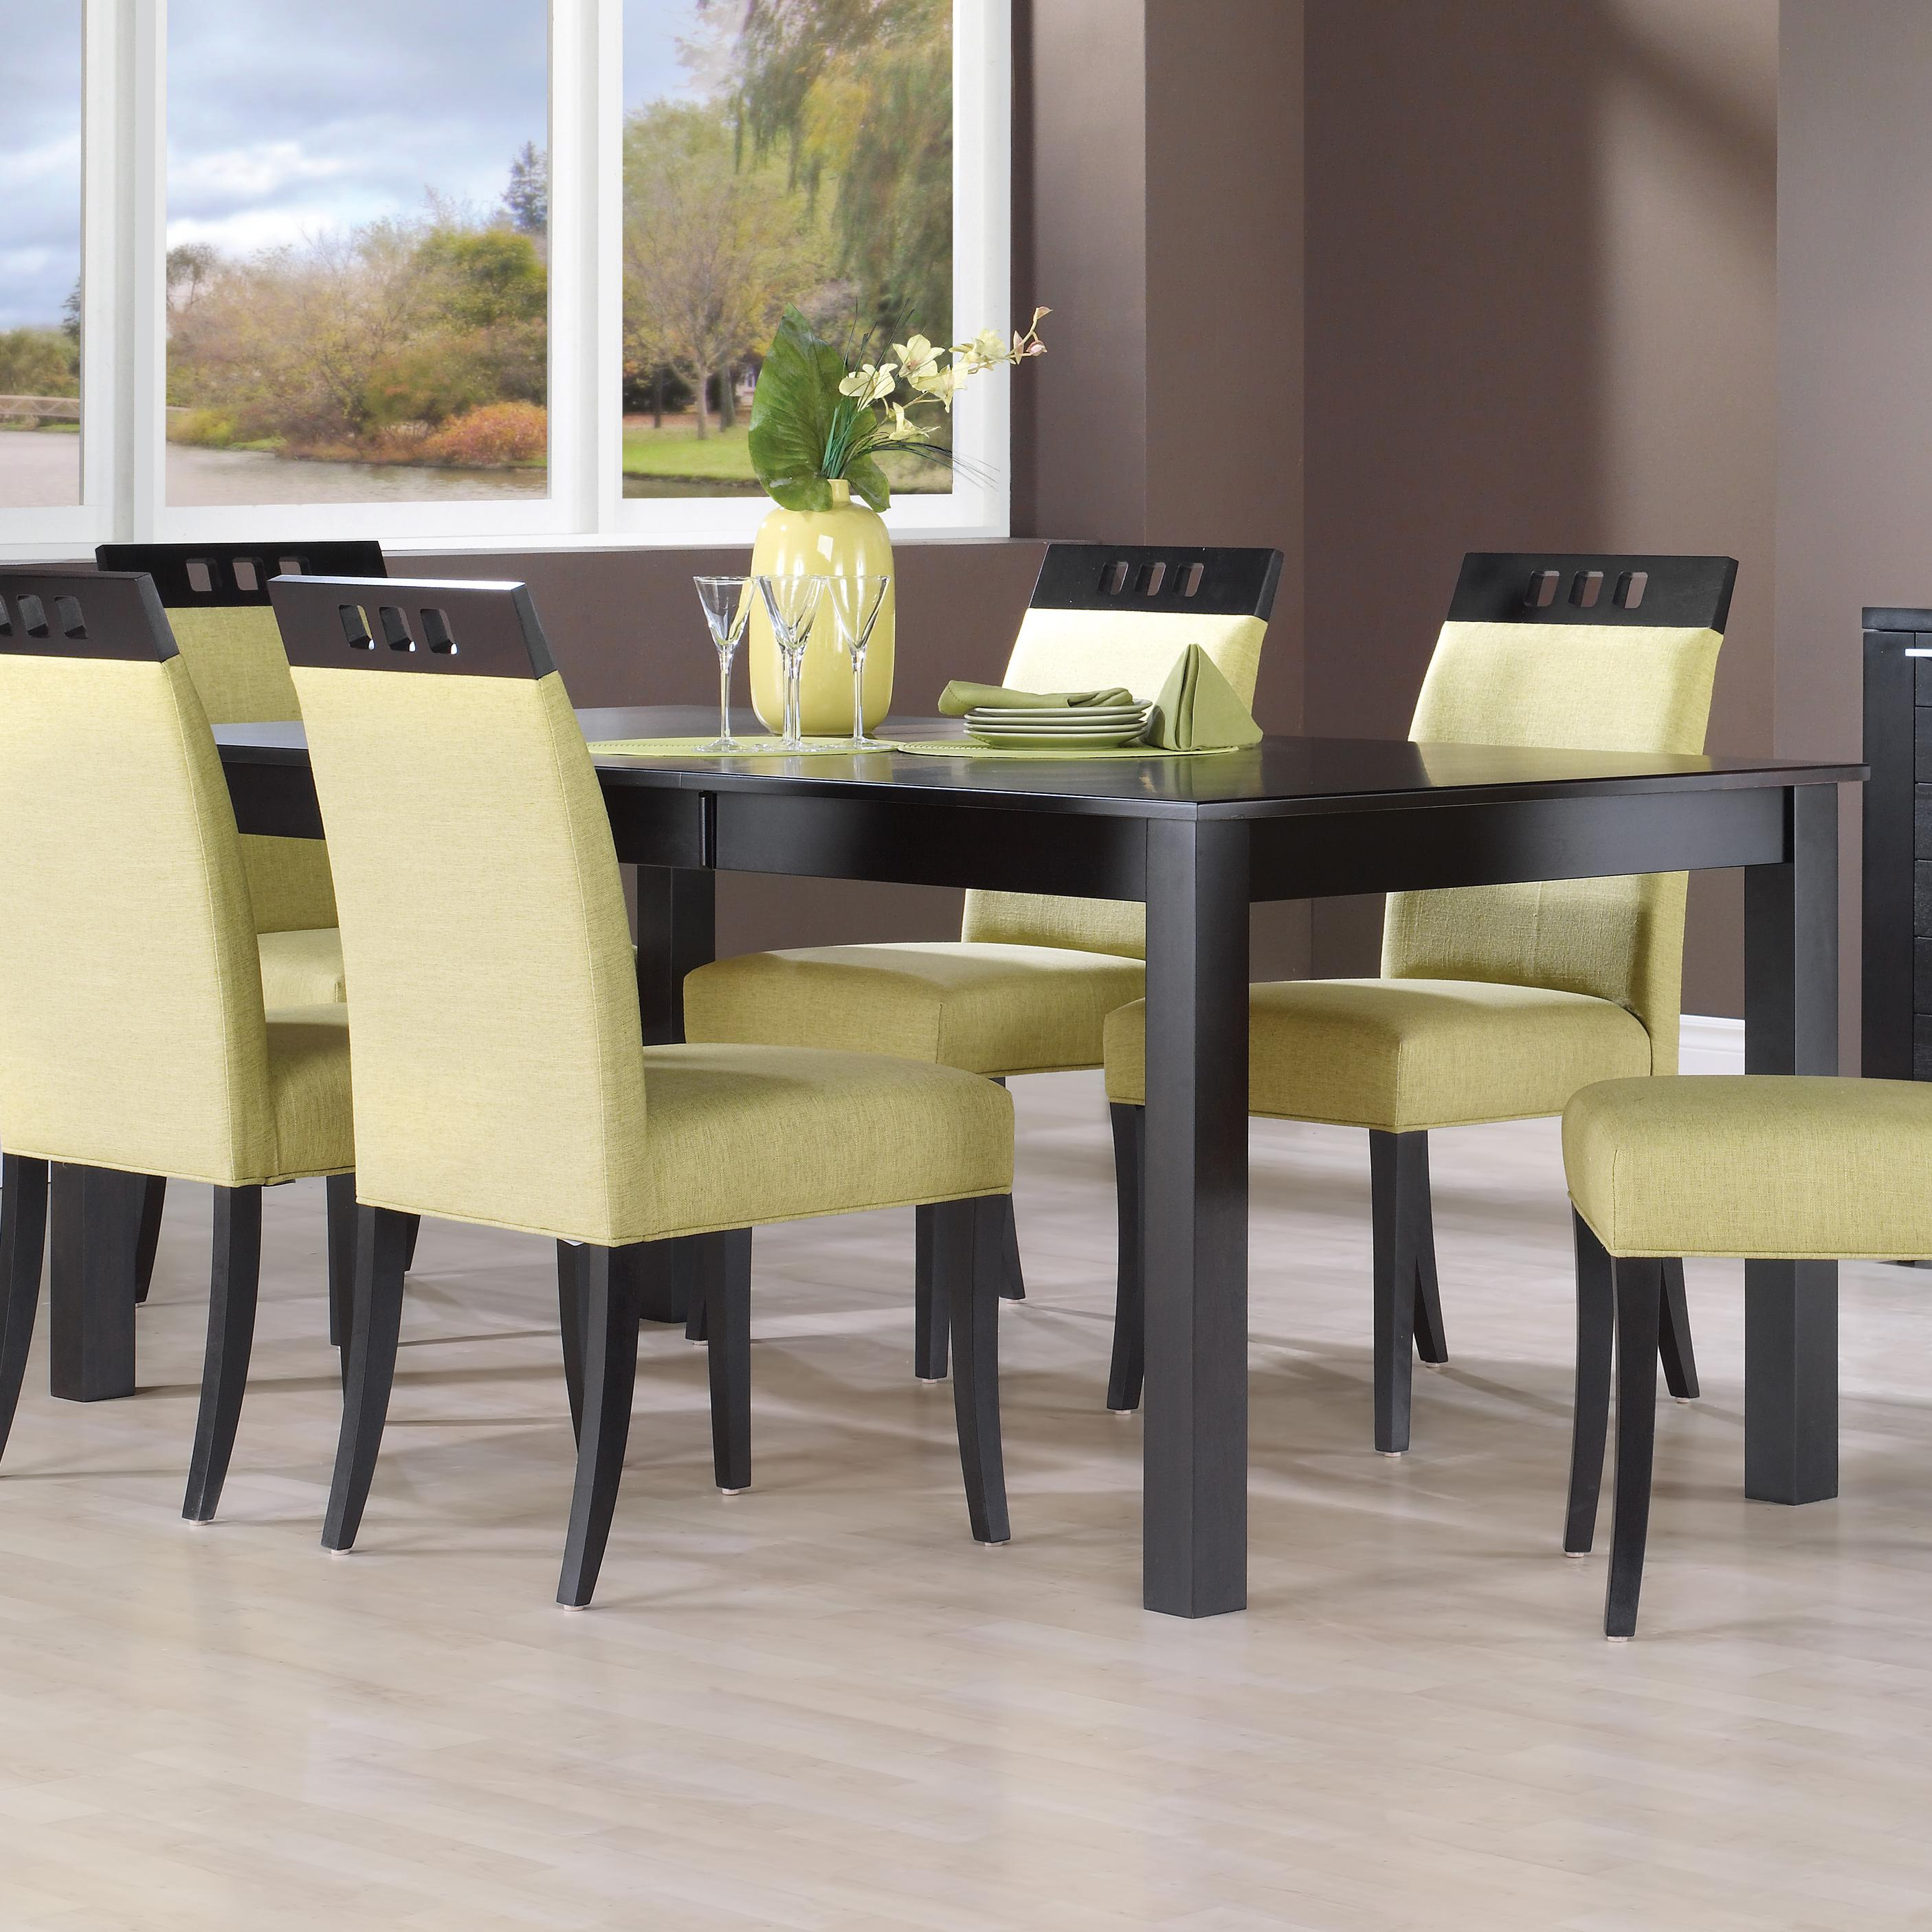 Canadel custom dining tre038680505mhdd1 customizable for John v schultz dining room table